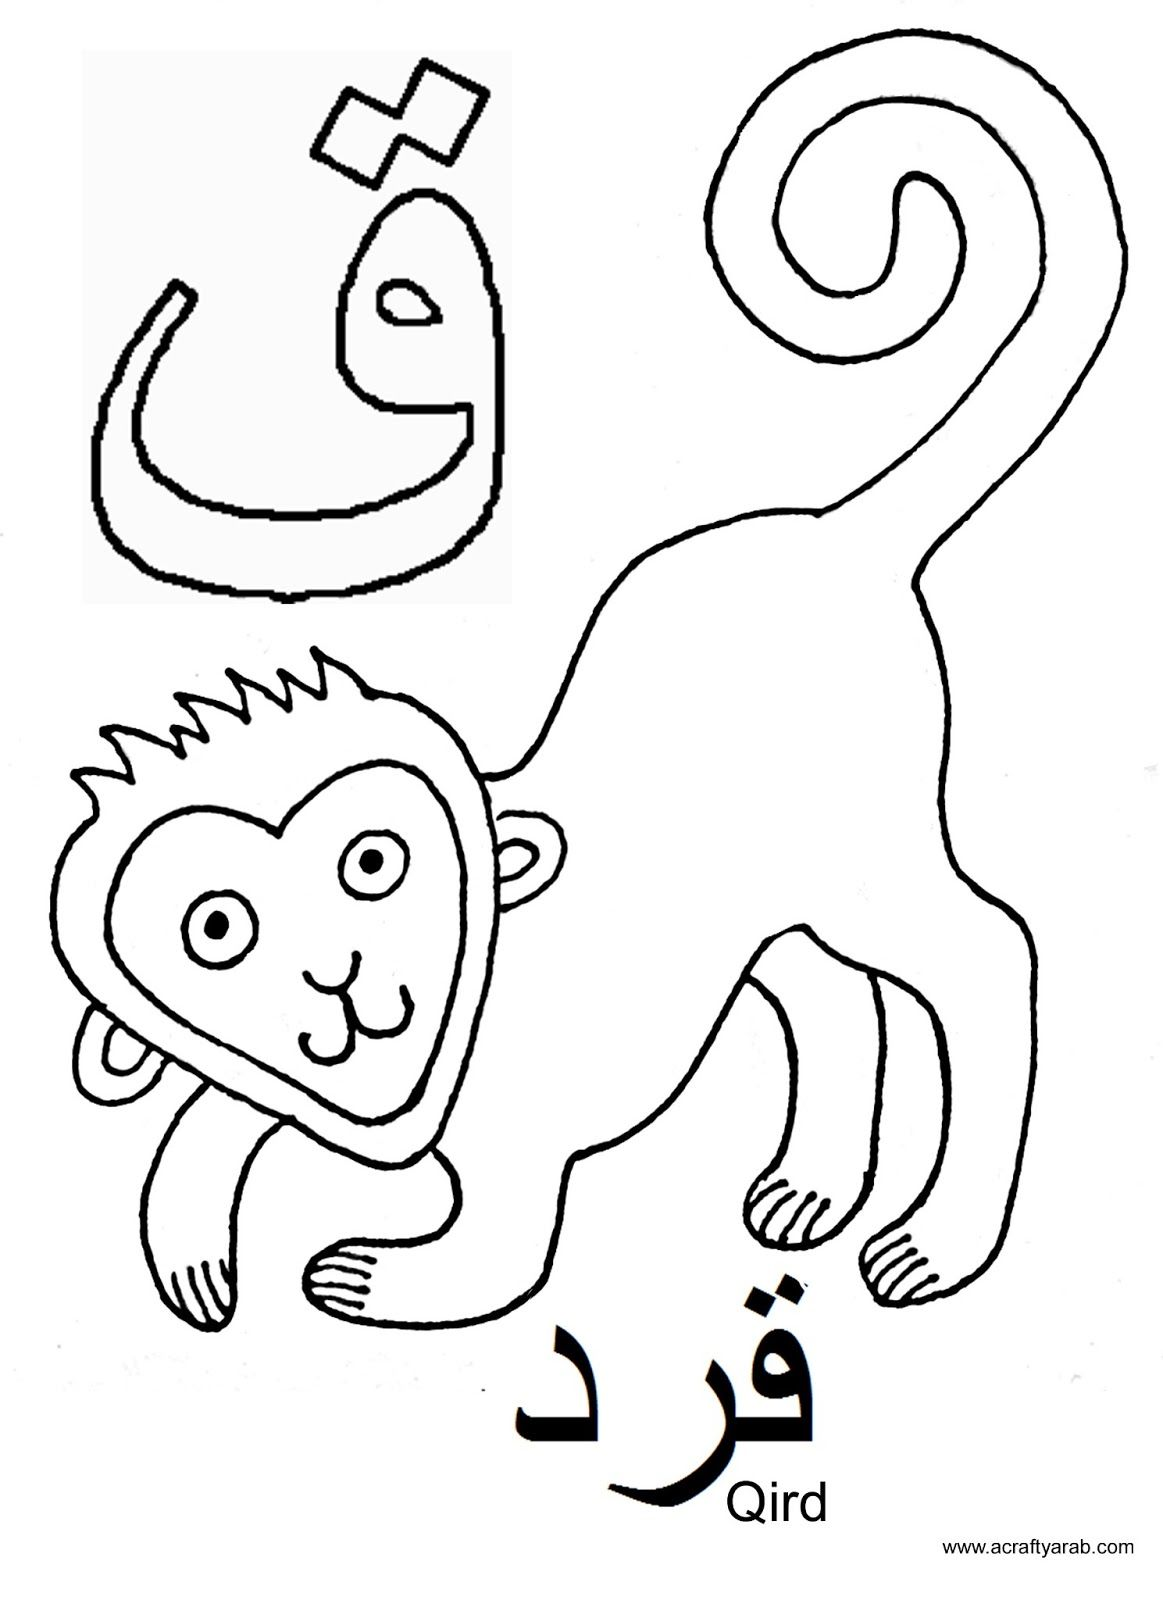 Arabic Alphabet Coloring Pages F Is For Qird